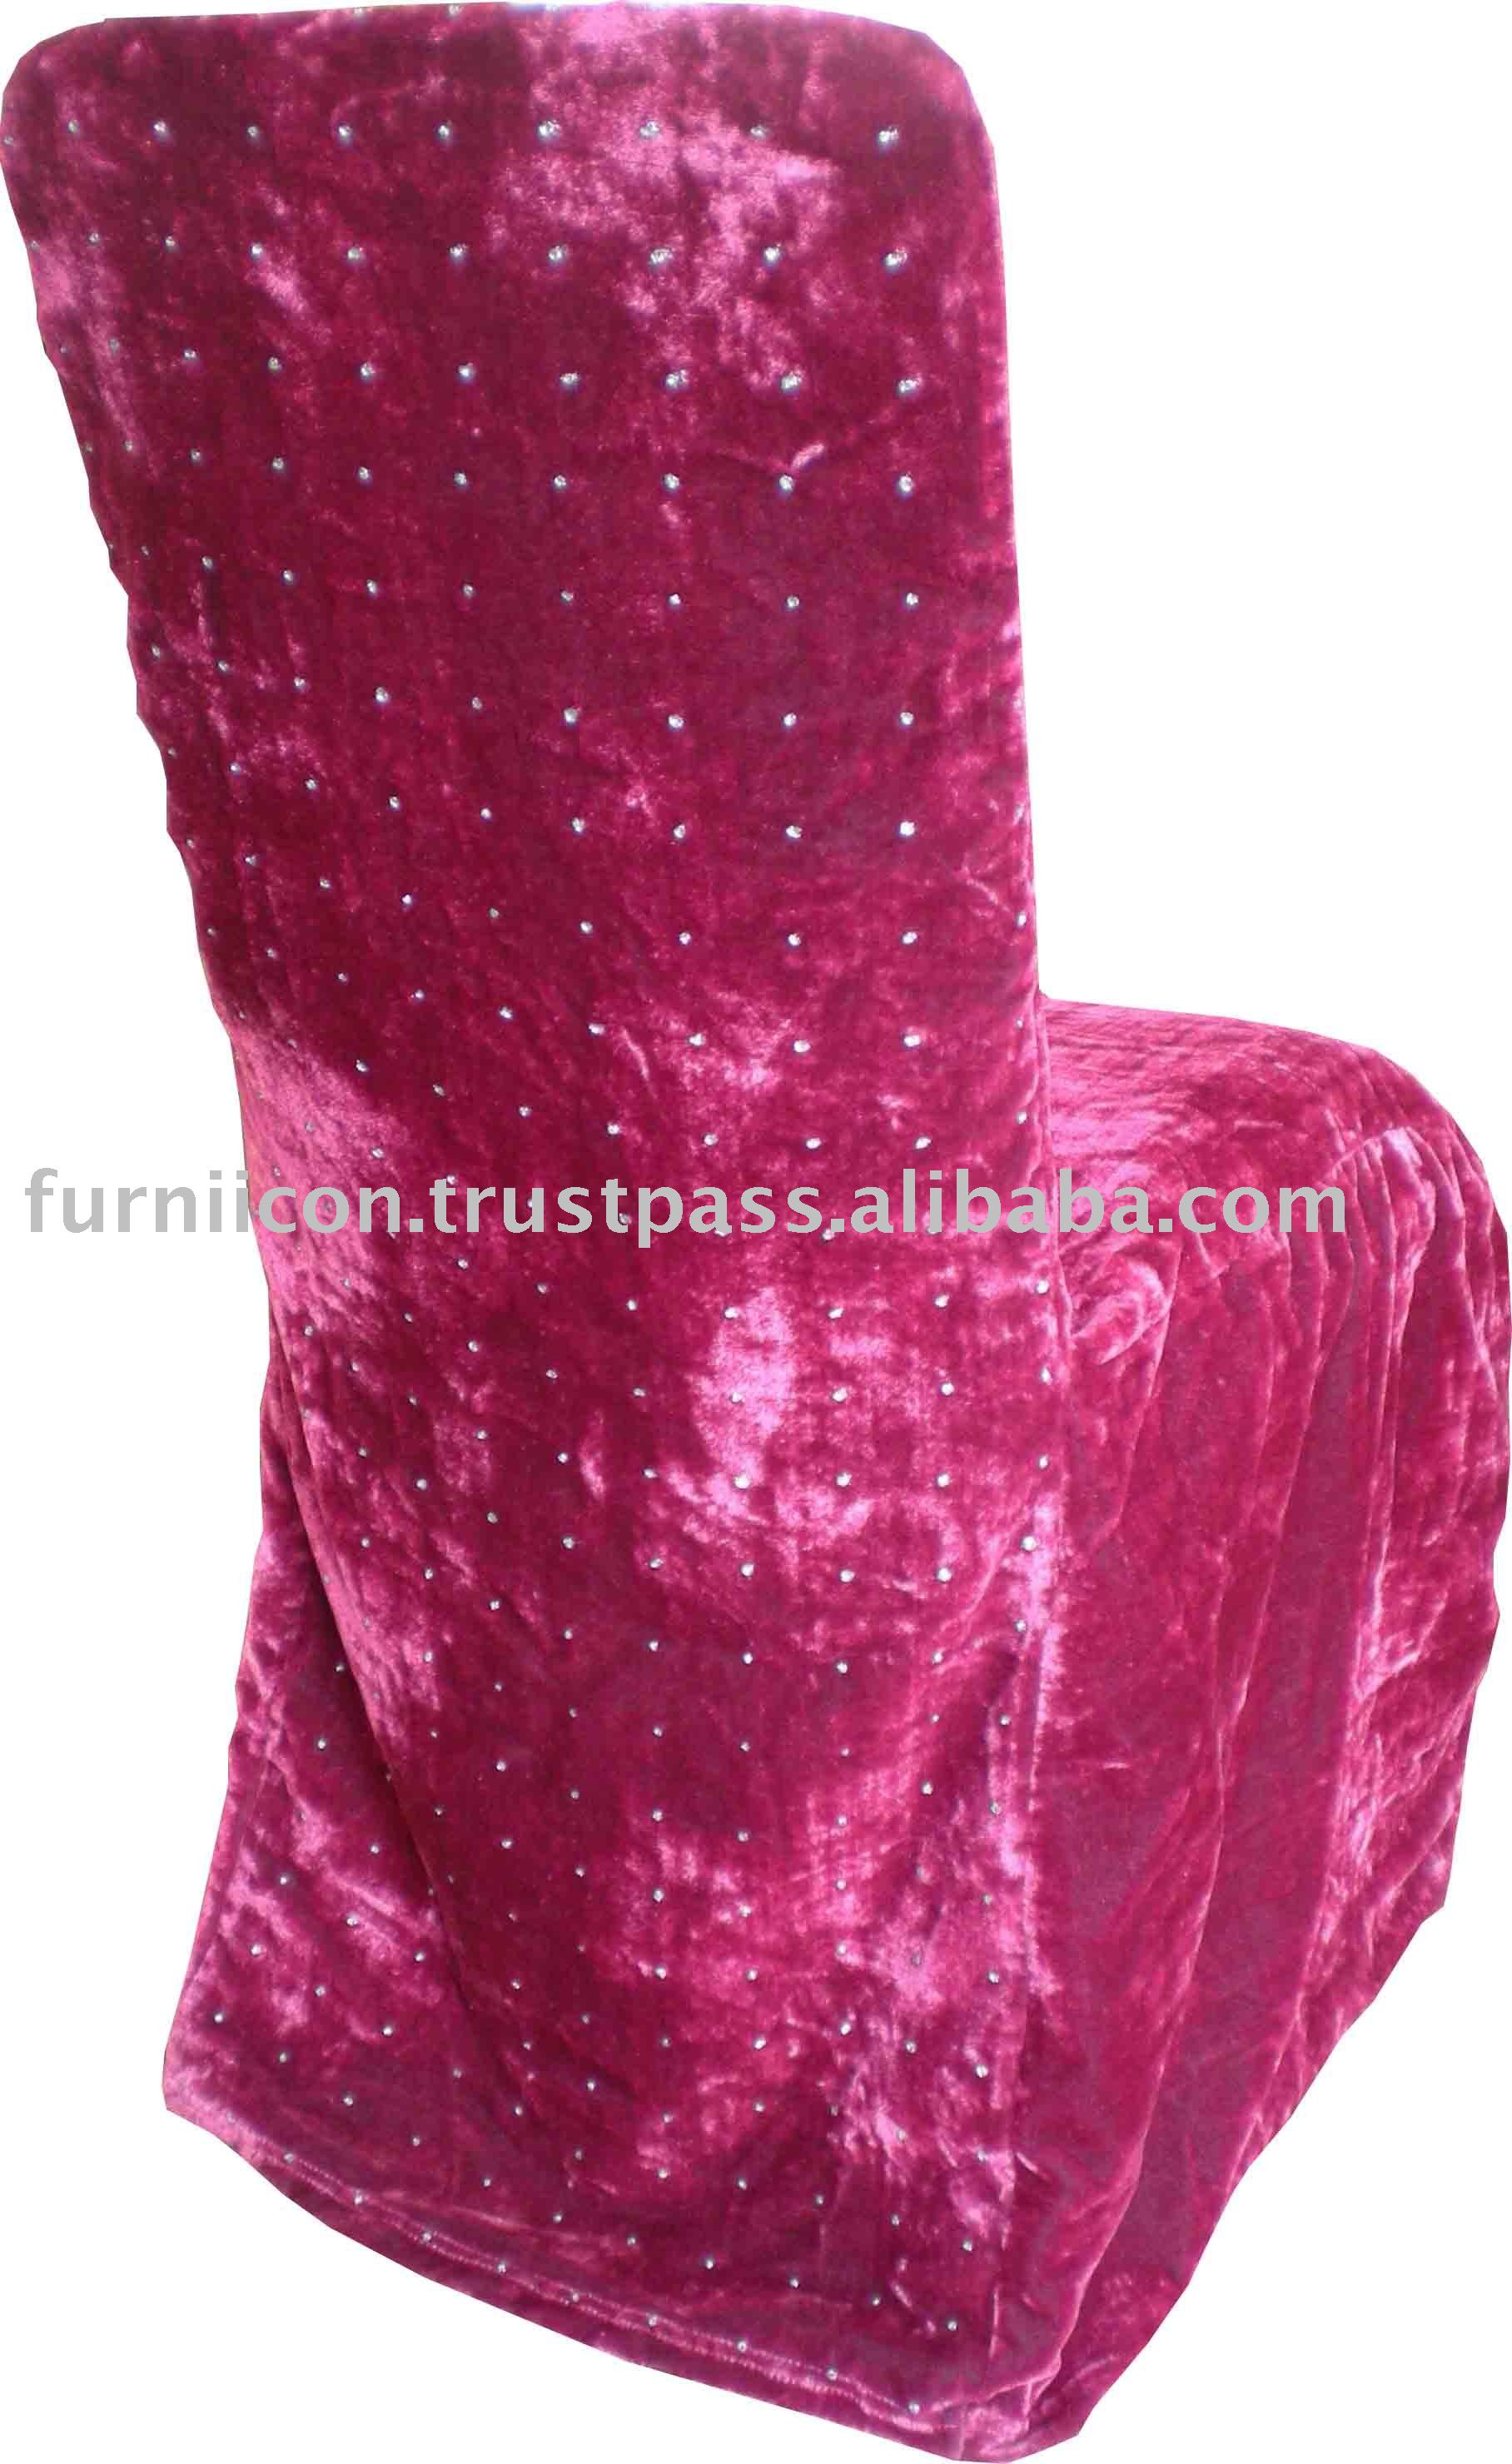 velvet chair covers wholesale china sayl task unique cheap under 1 rtty1